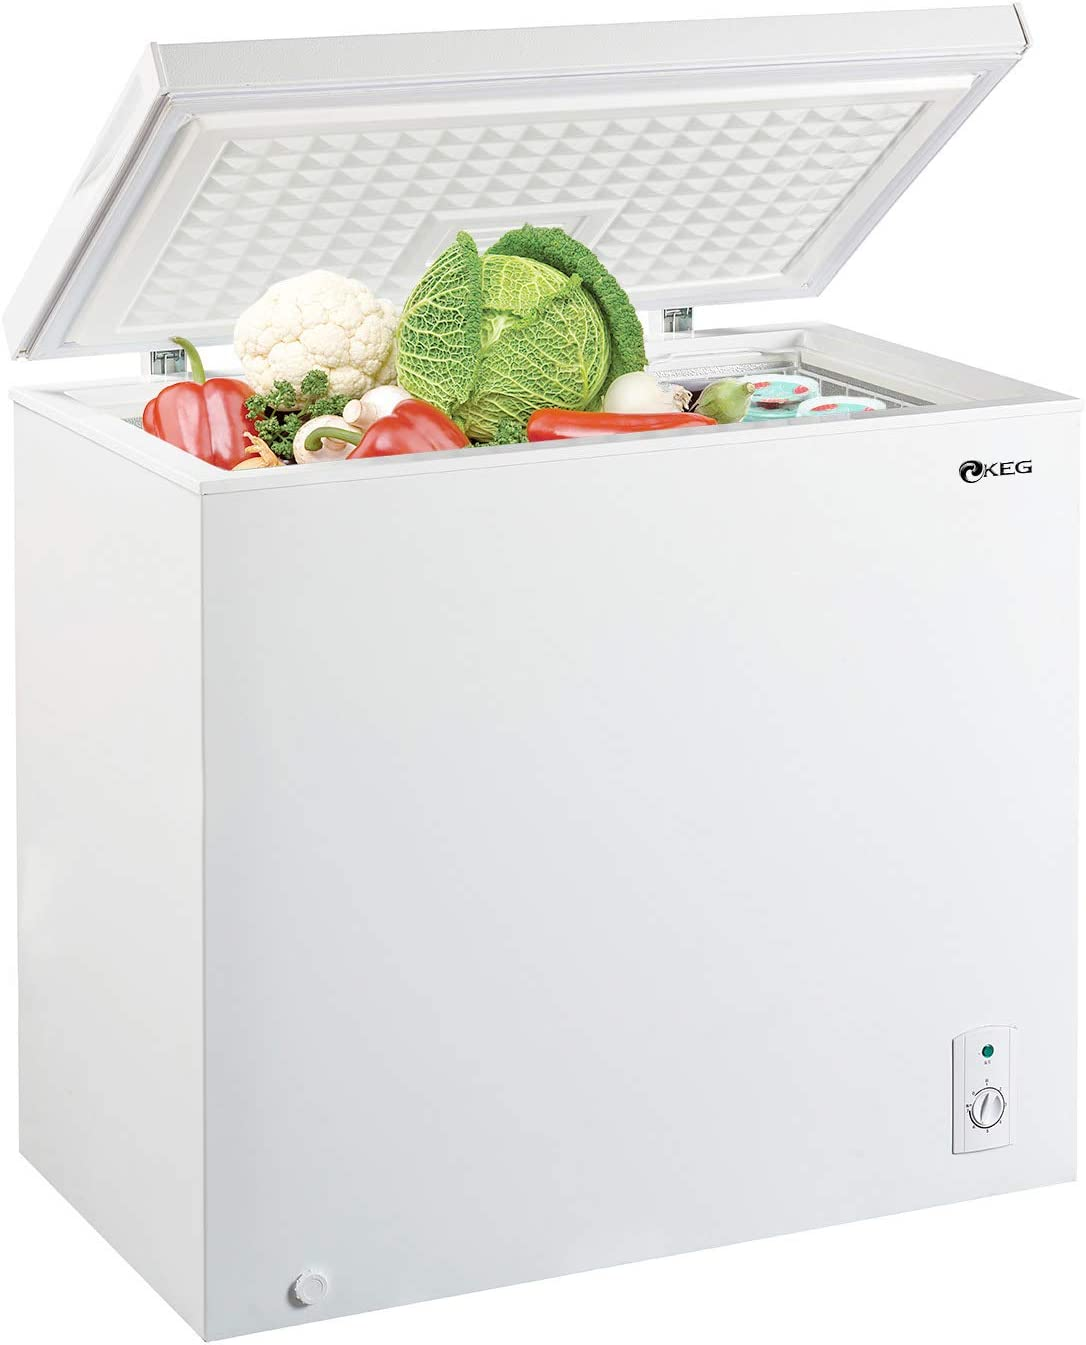 KEG Top Chest Freezer 7.0 Cubic Feet with Adjustable Thermostat and Removable Storage Basket, Freezing Machine for Home and Kitchen, White